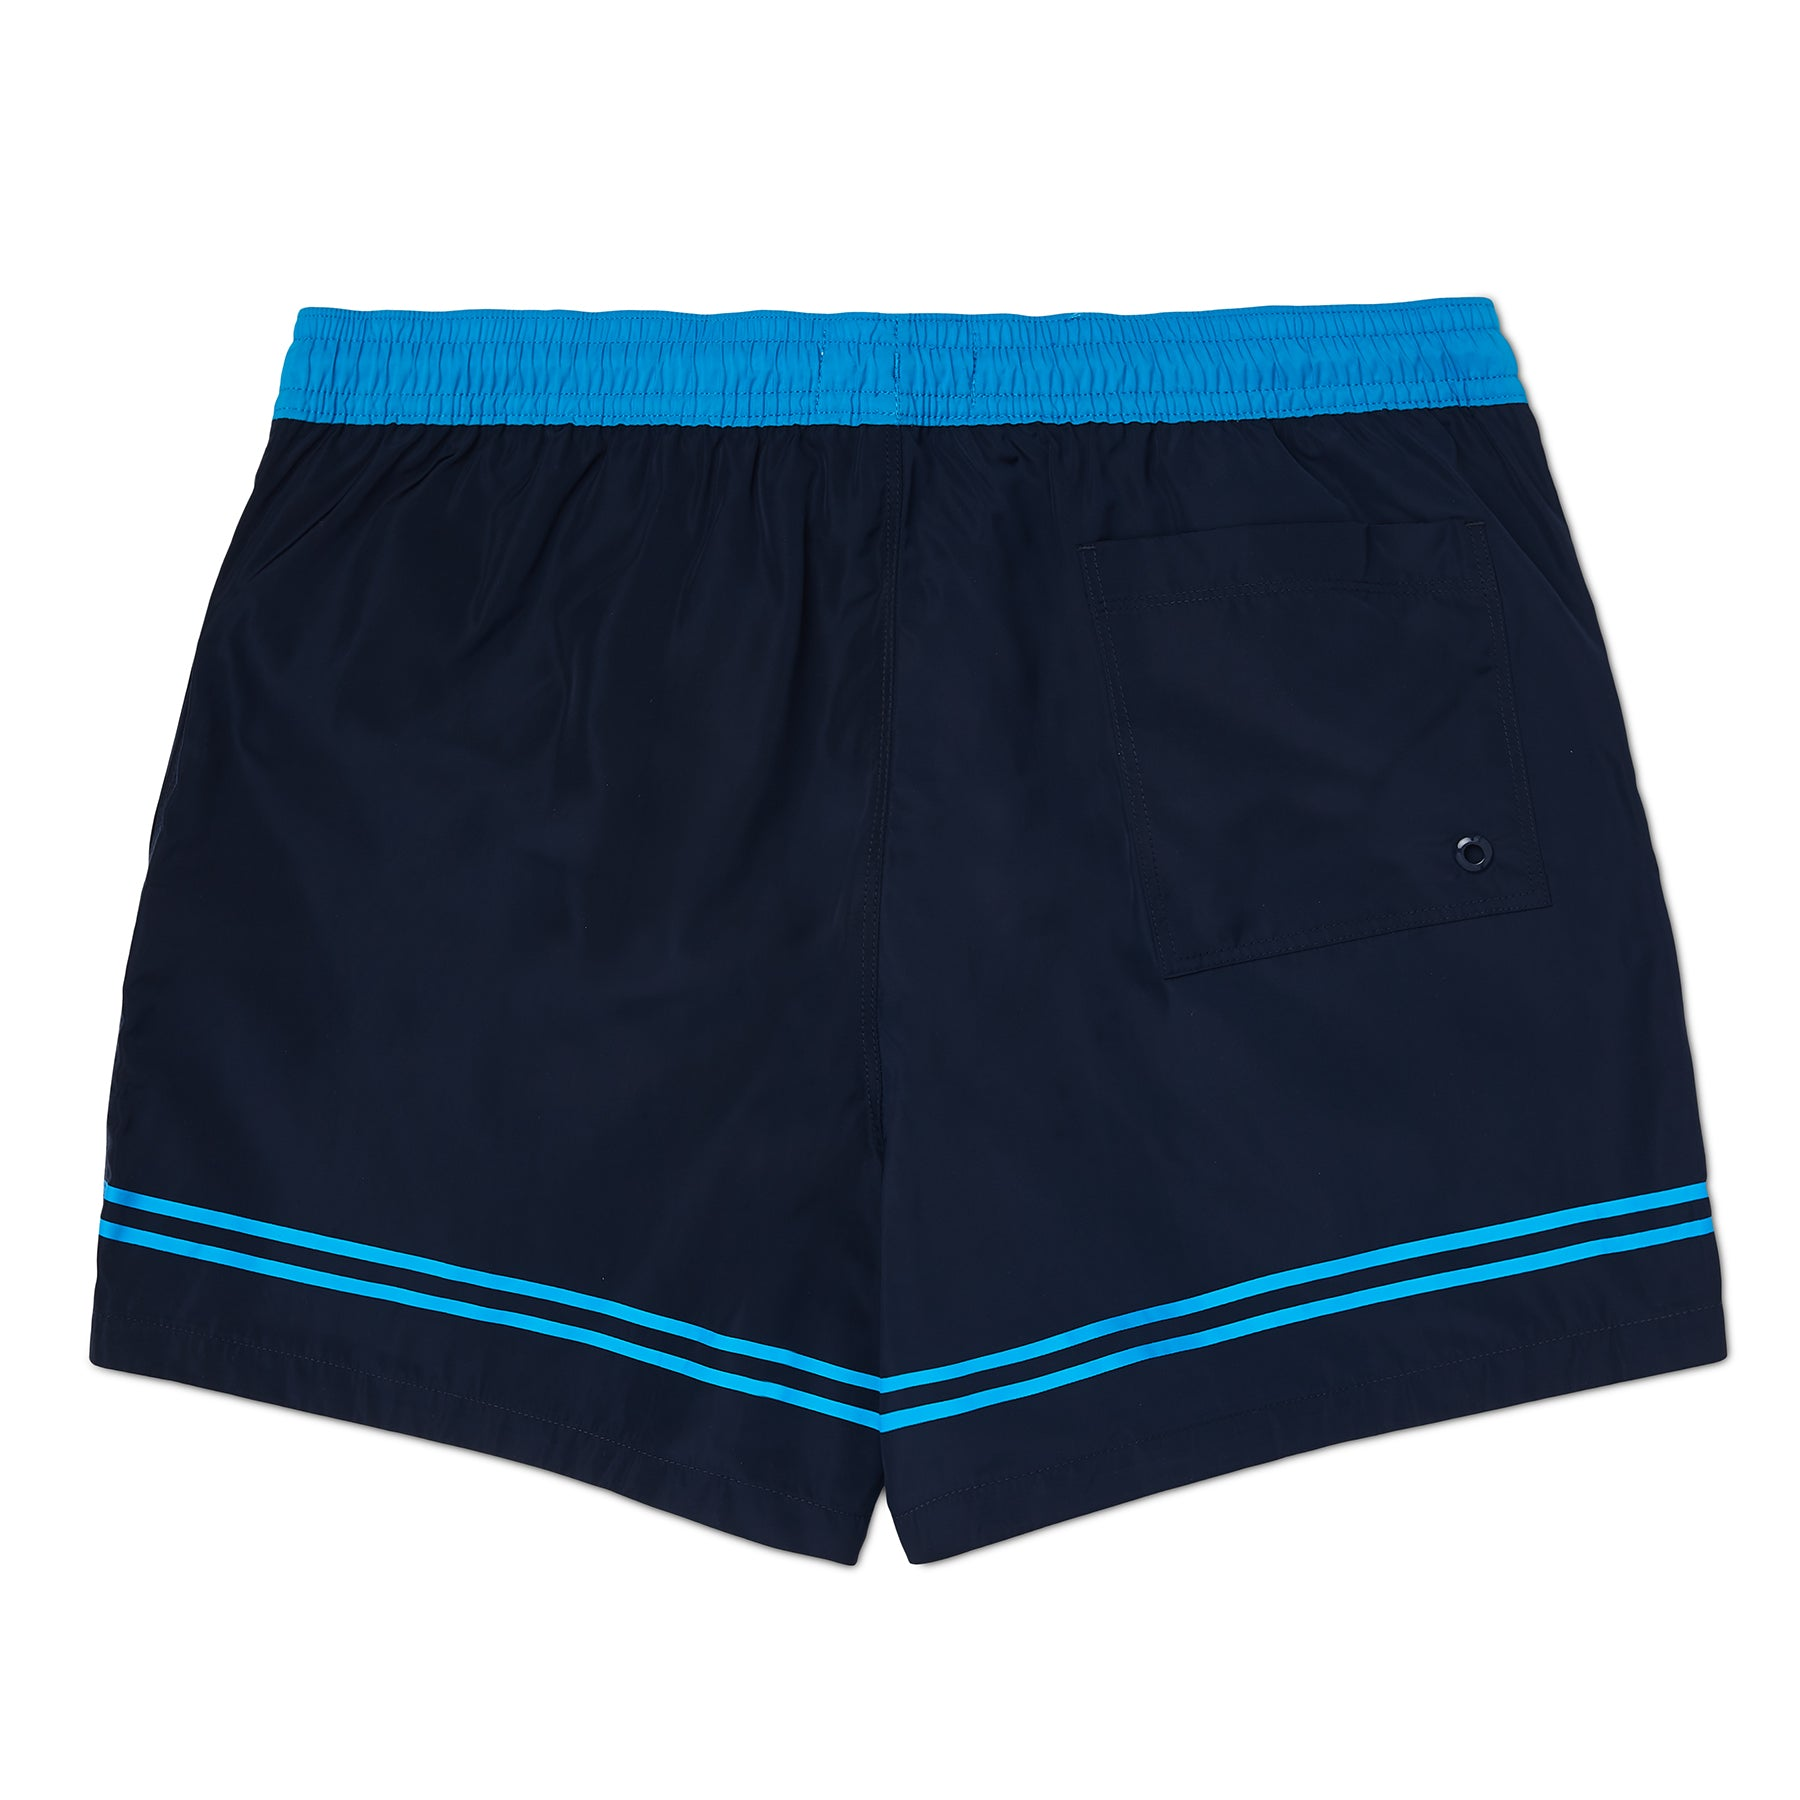 Navy and Aqua Blue Leg Stripe & Logo Swim Short, Regular Length